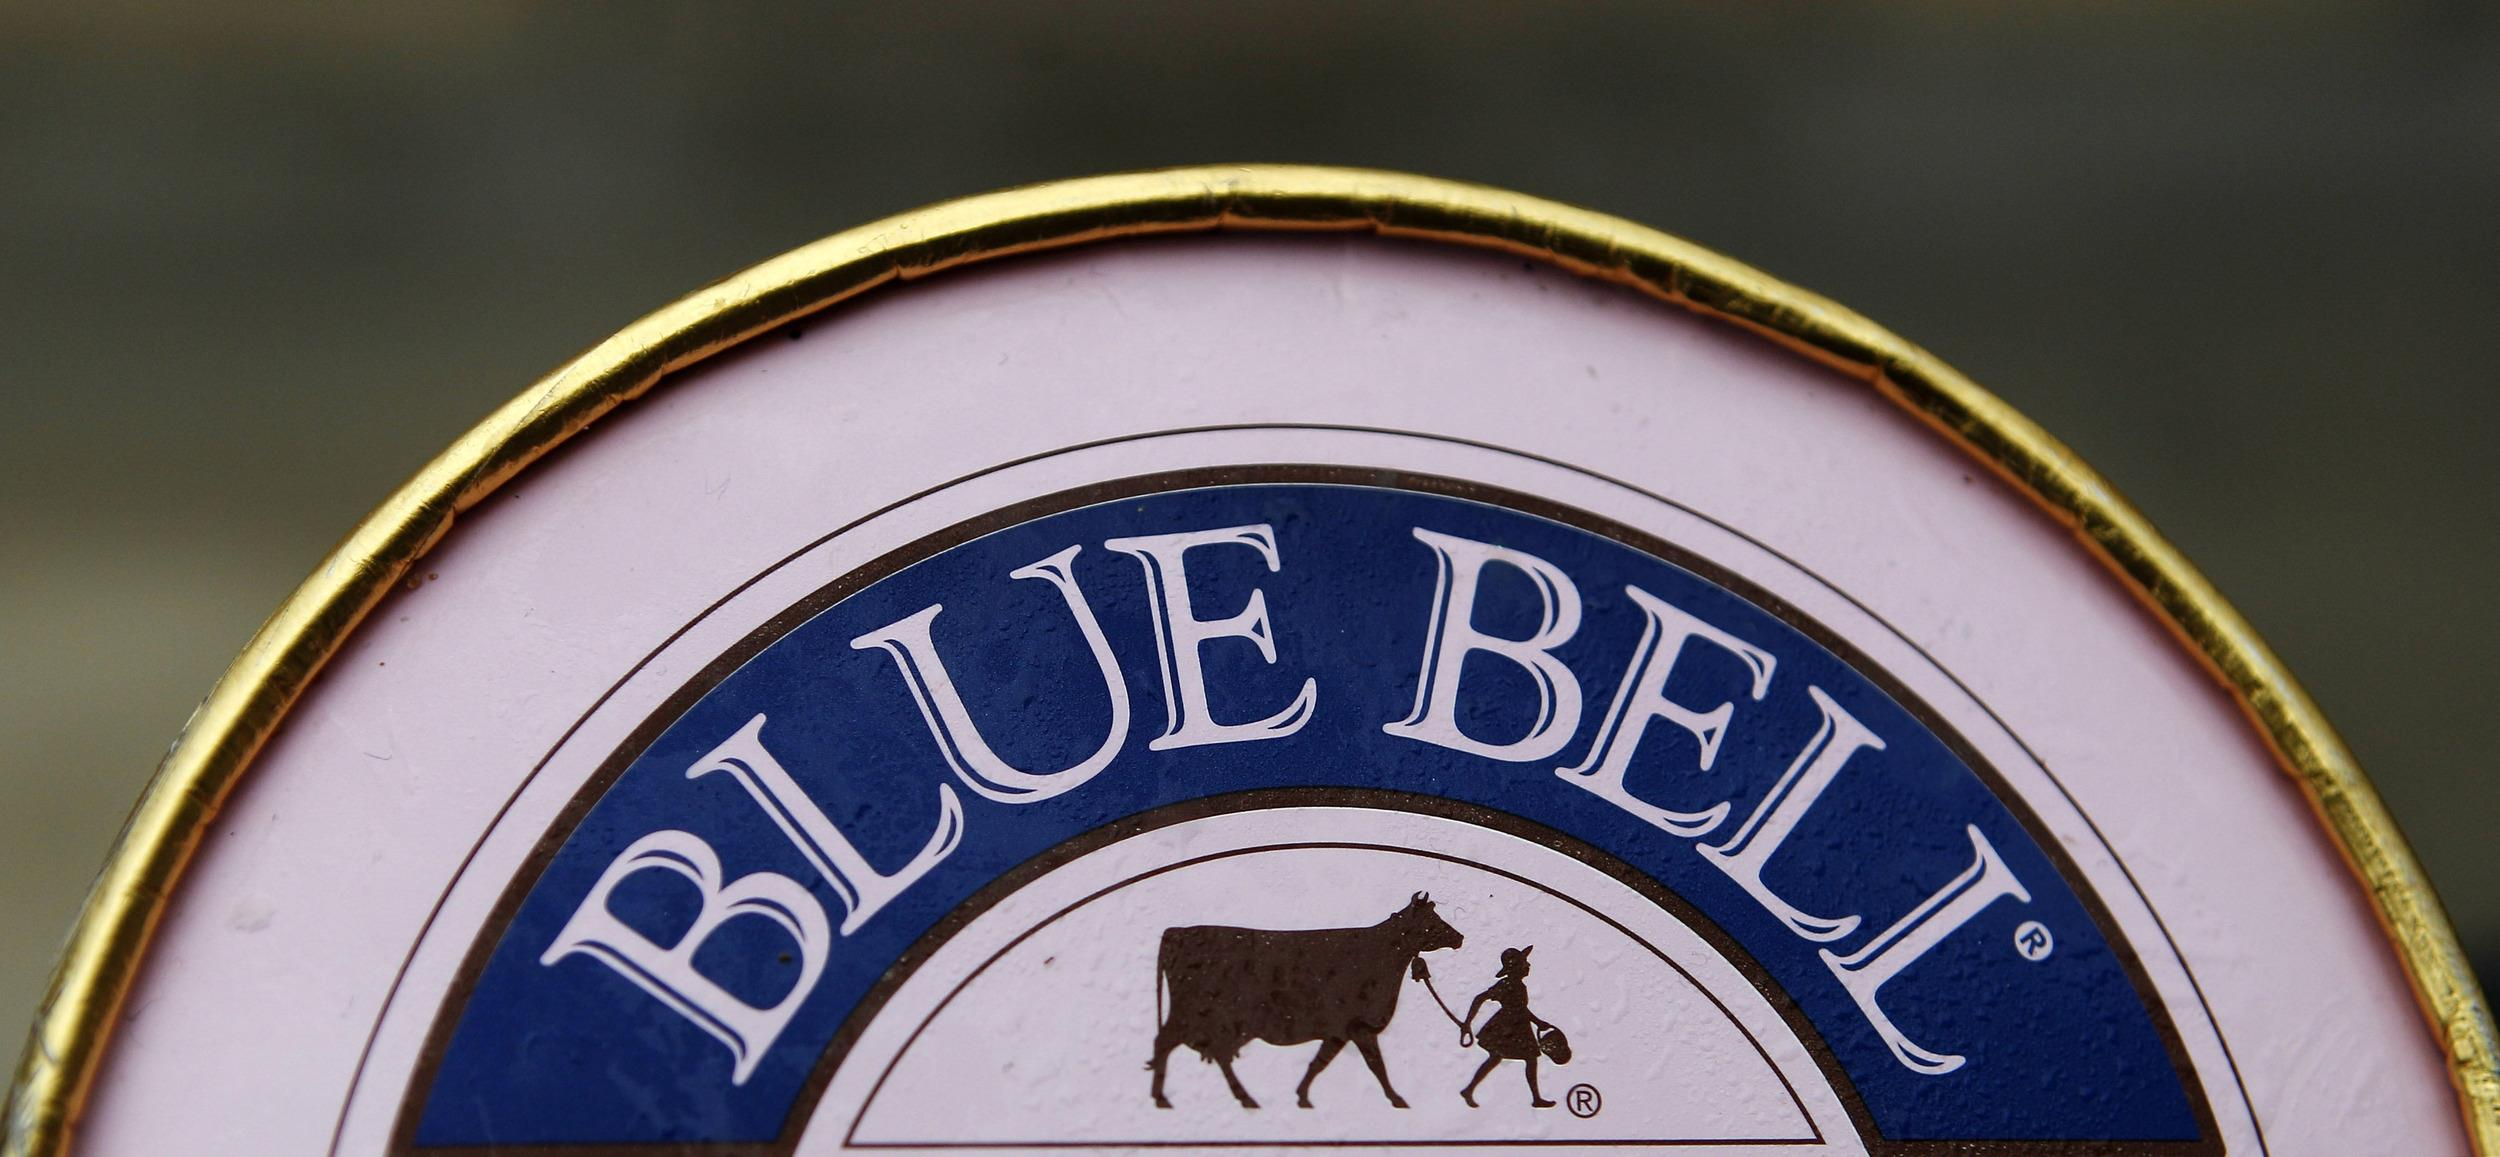 blue bell ice cream_83545